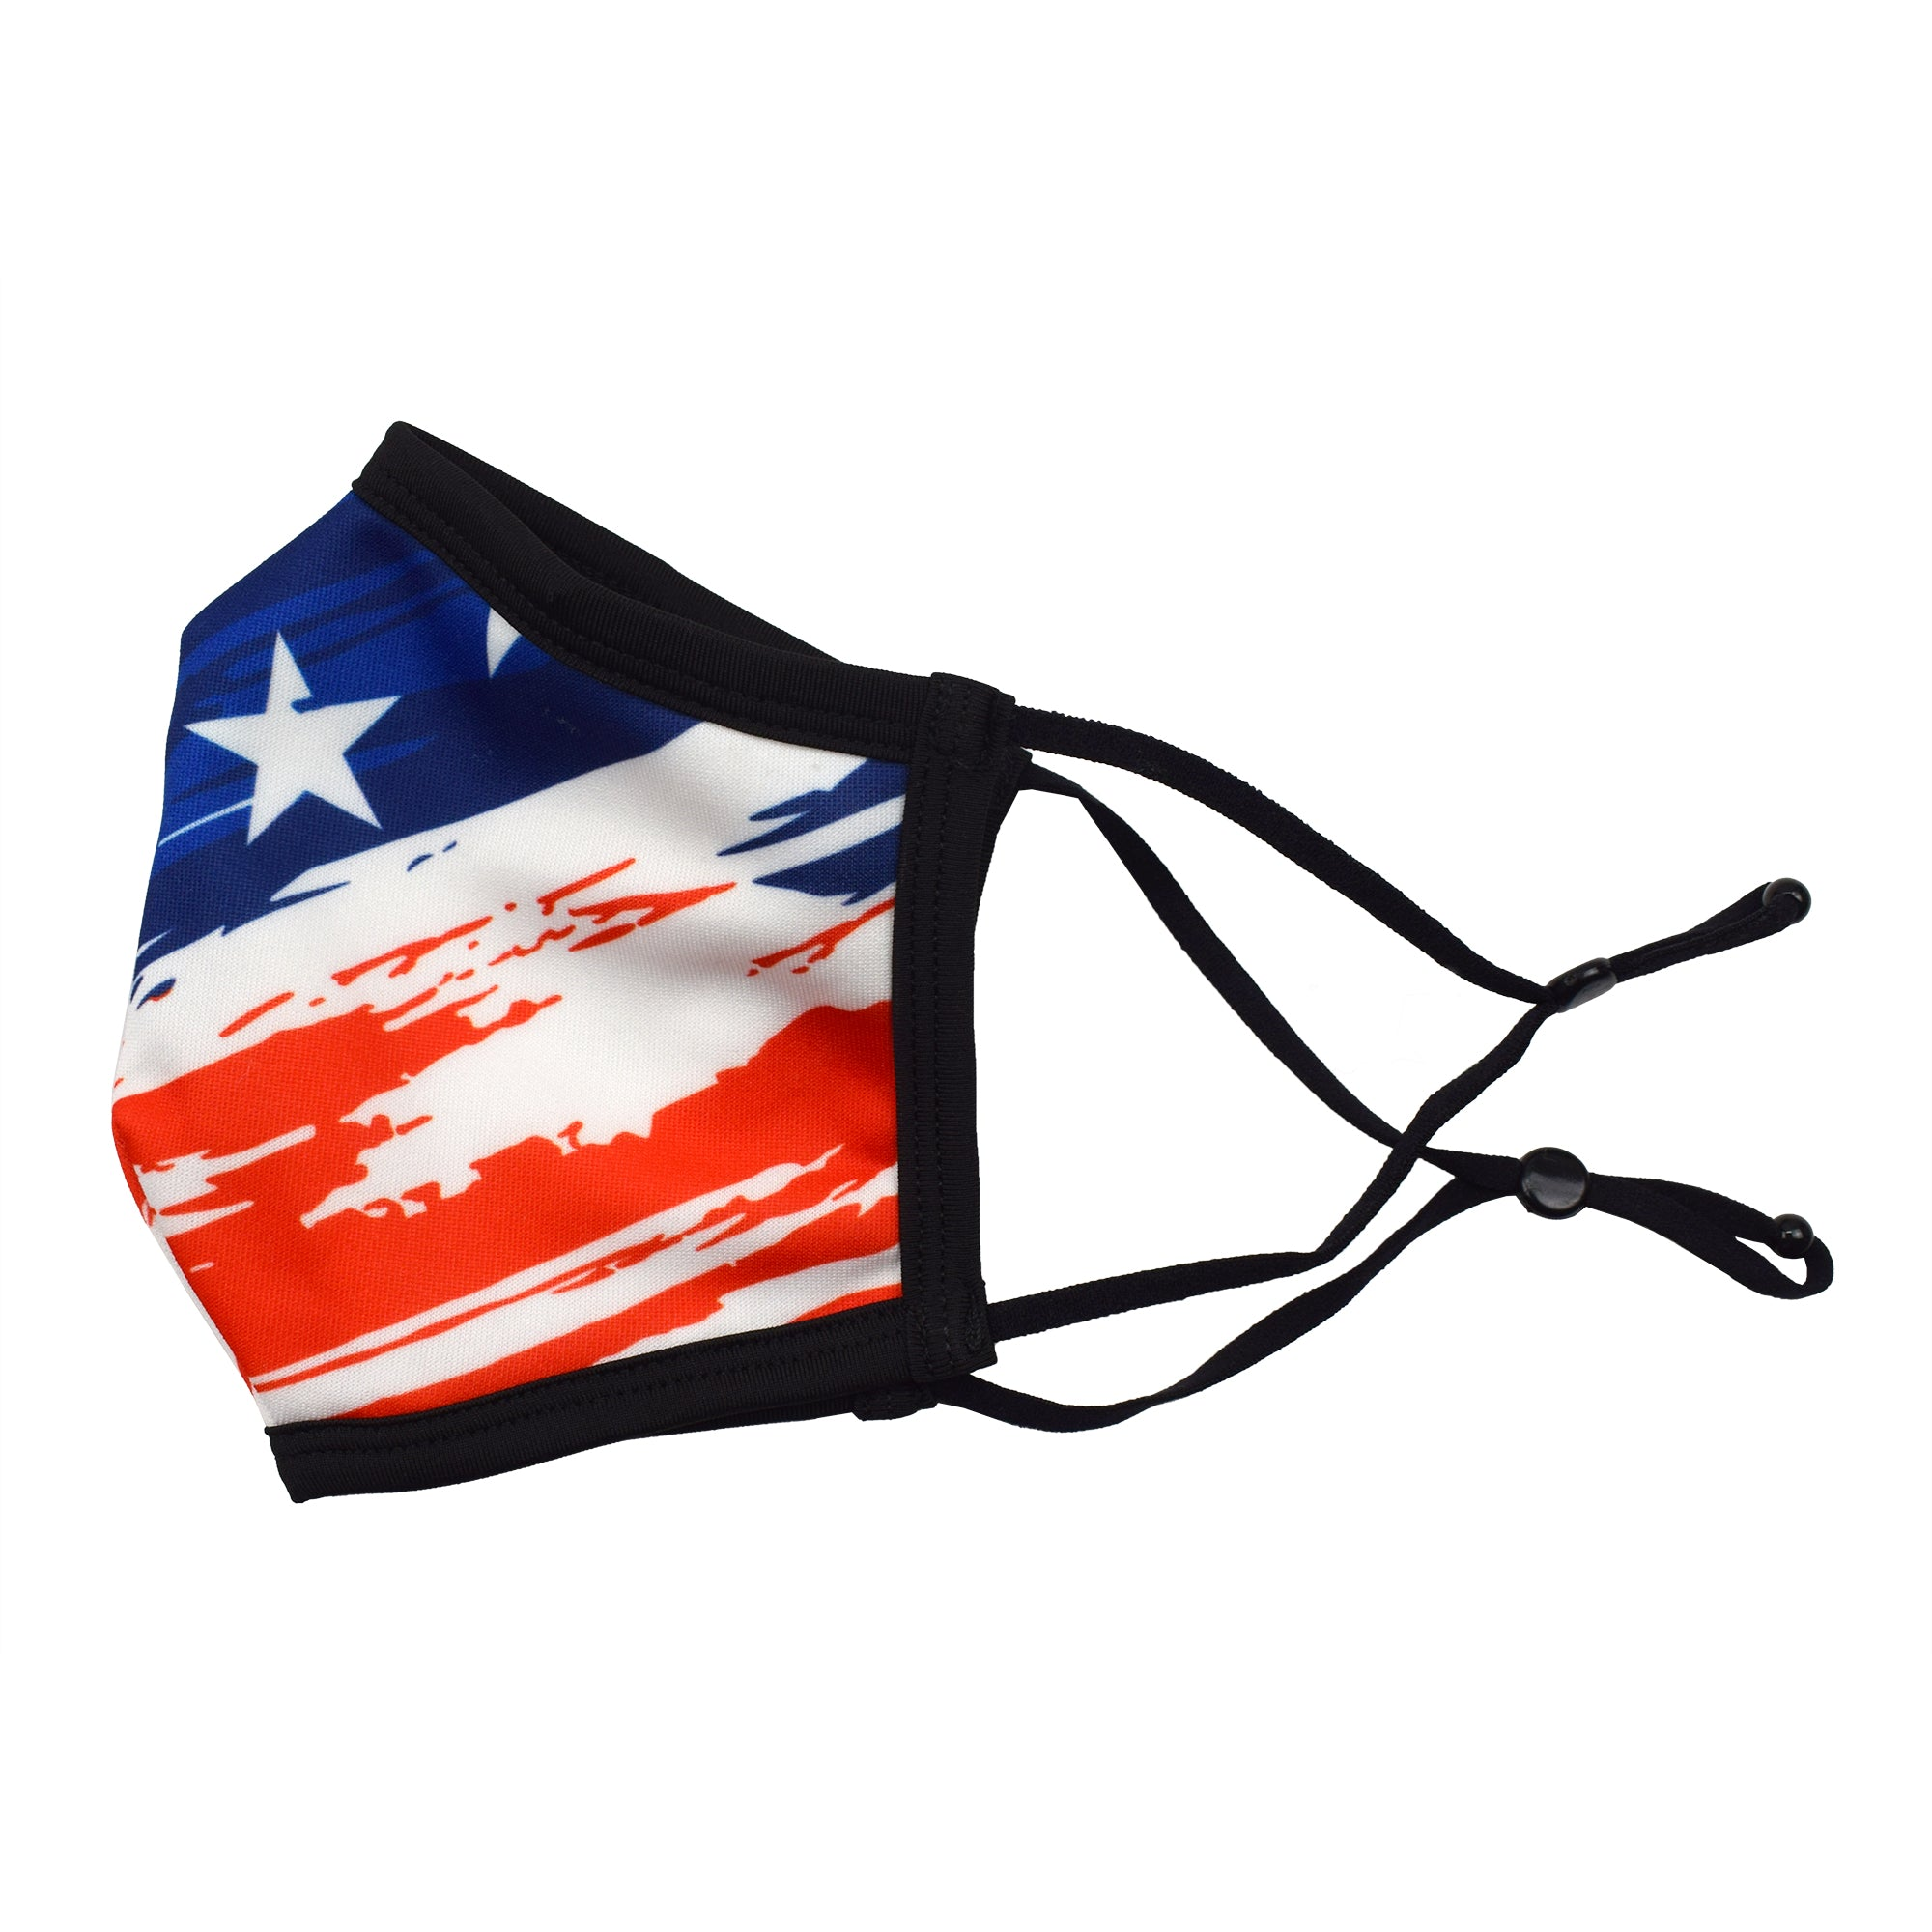 stars and stripes face covering mask - the flag shirt